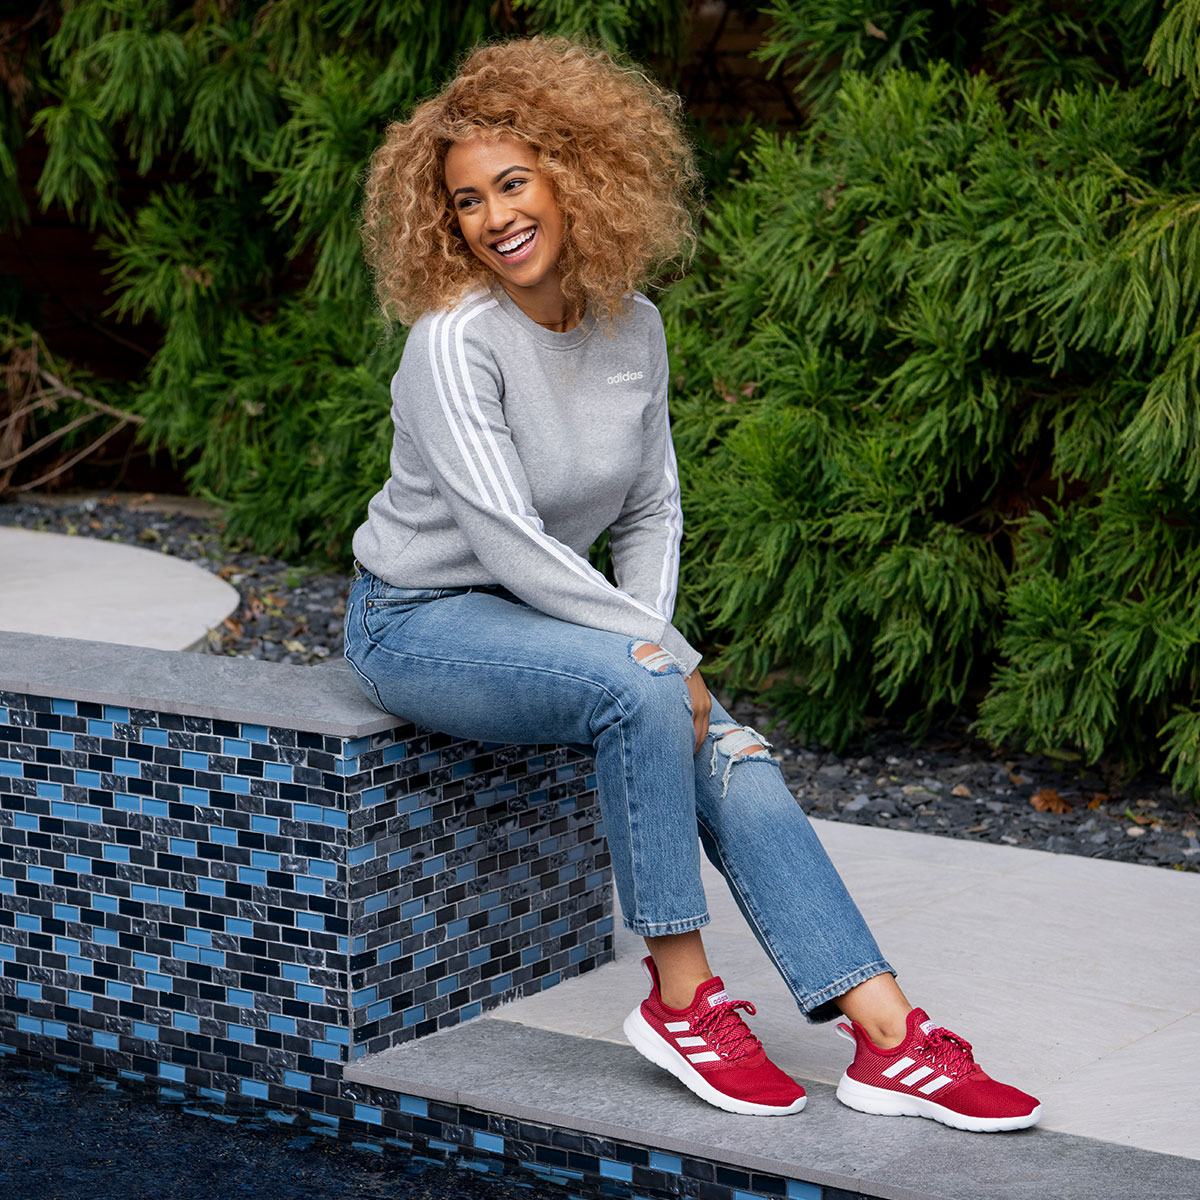 beautiful woman wearing red adidas sneakers